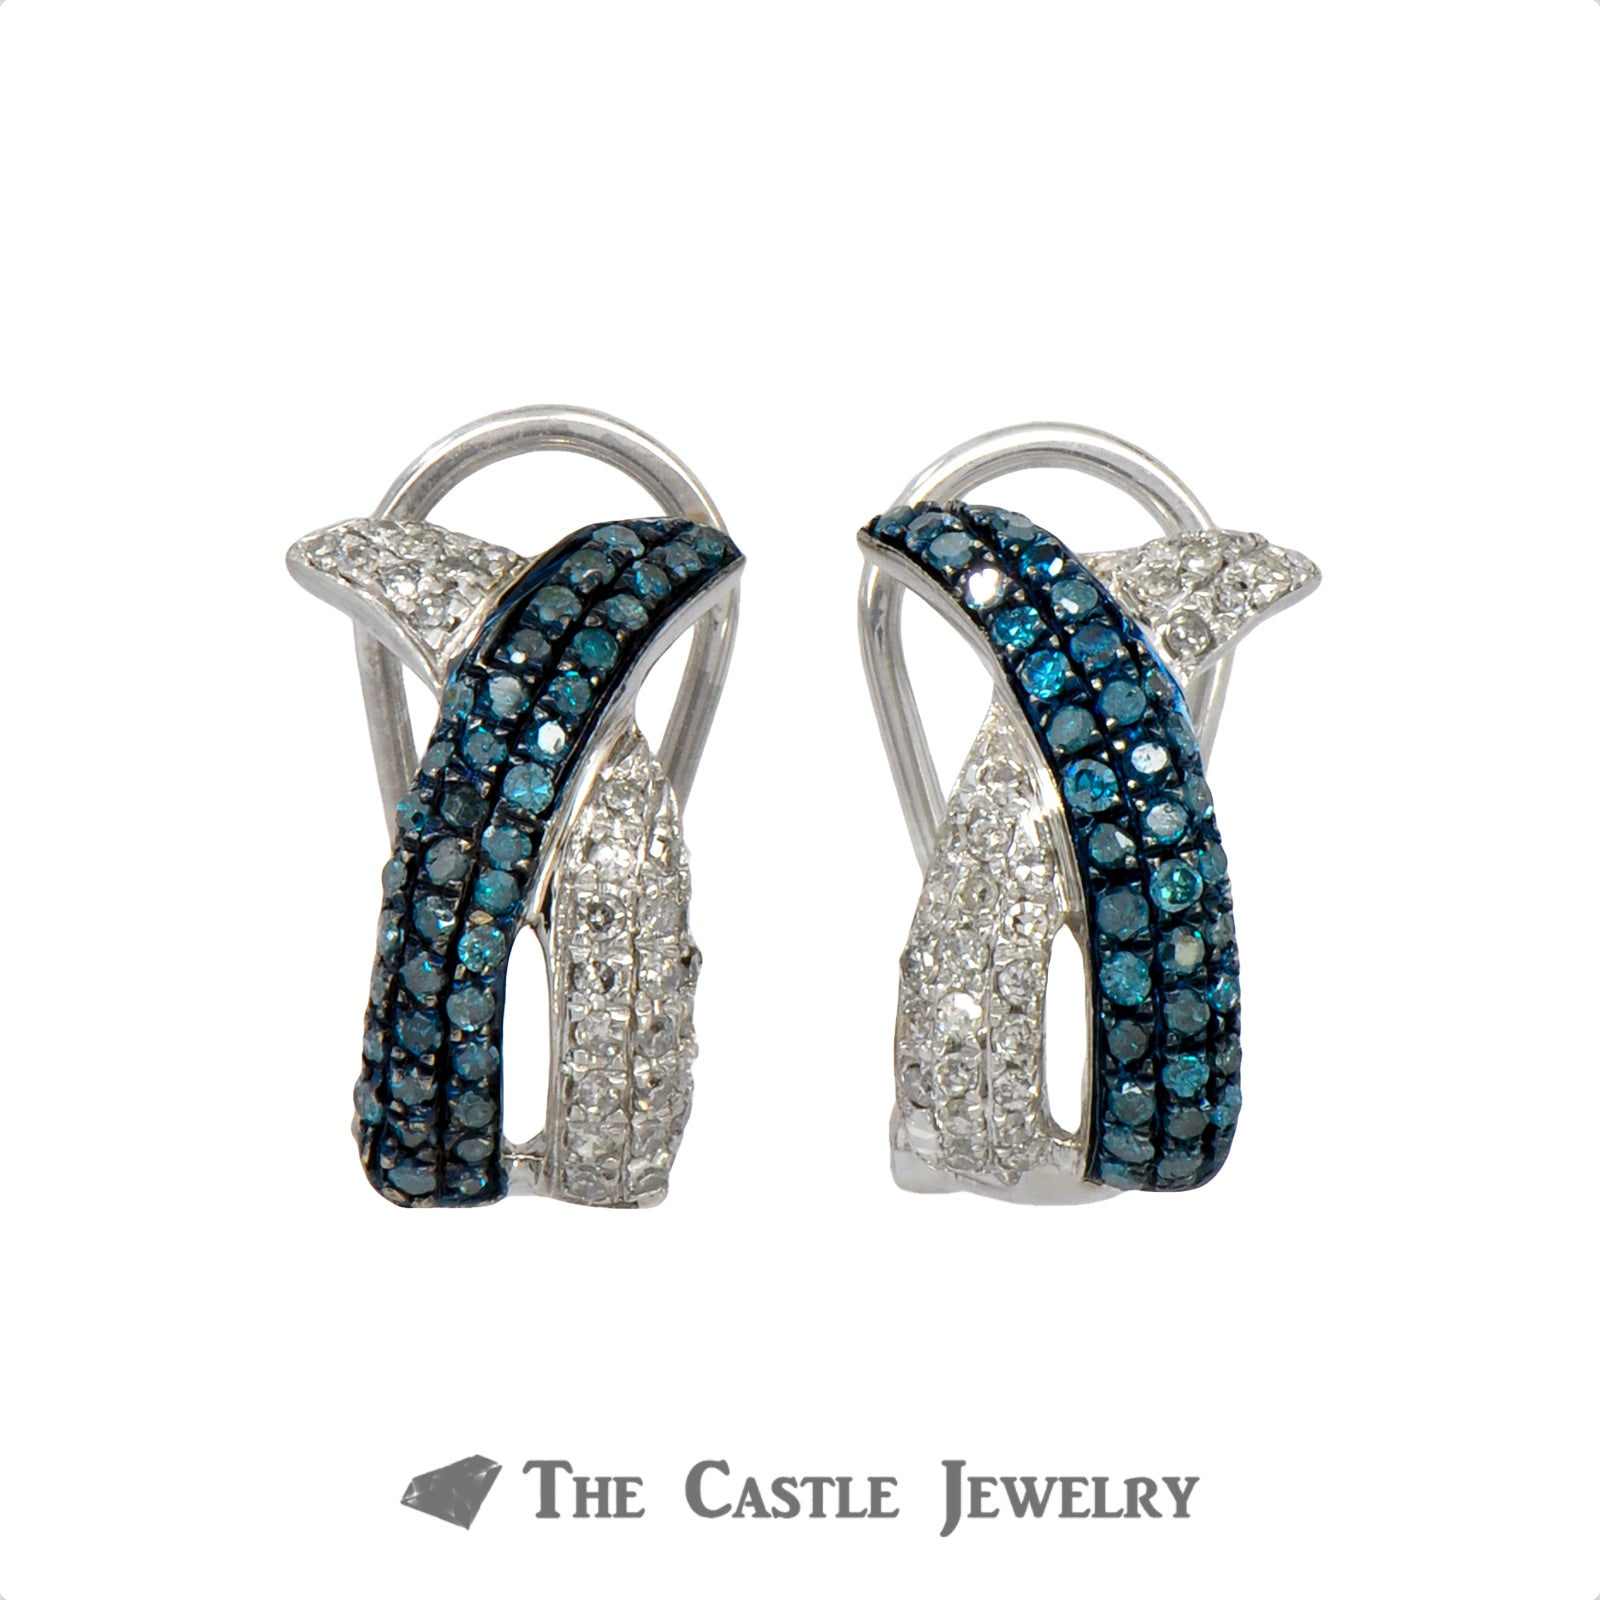 Interweaving Blue and White Pave Diamond Earrings in 10k White Gold